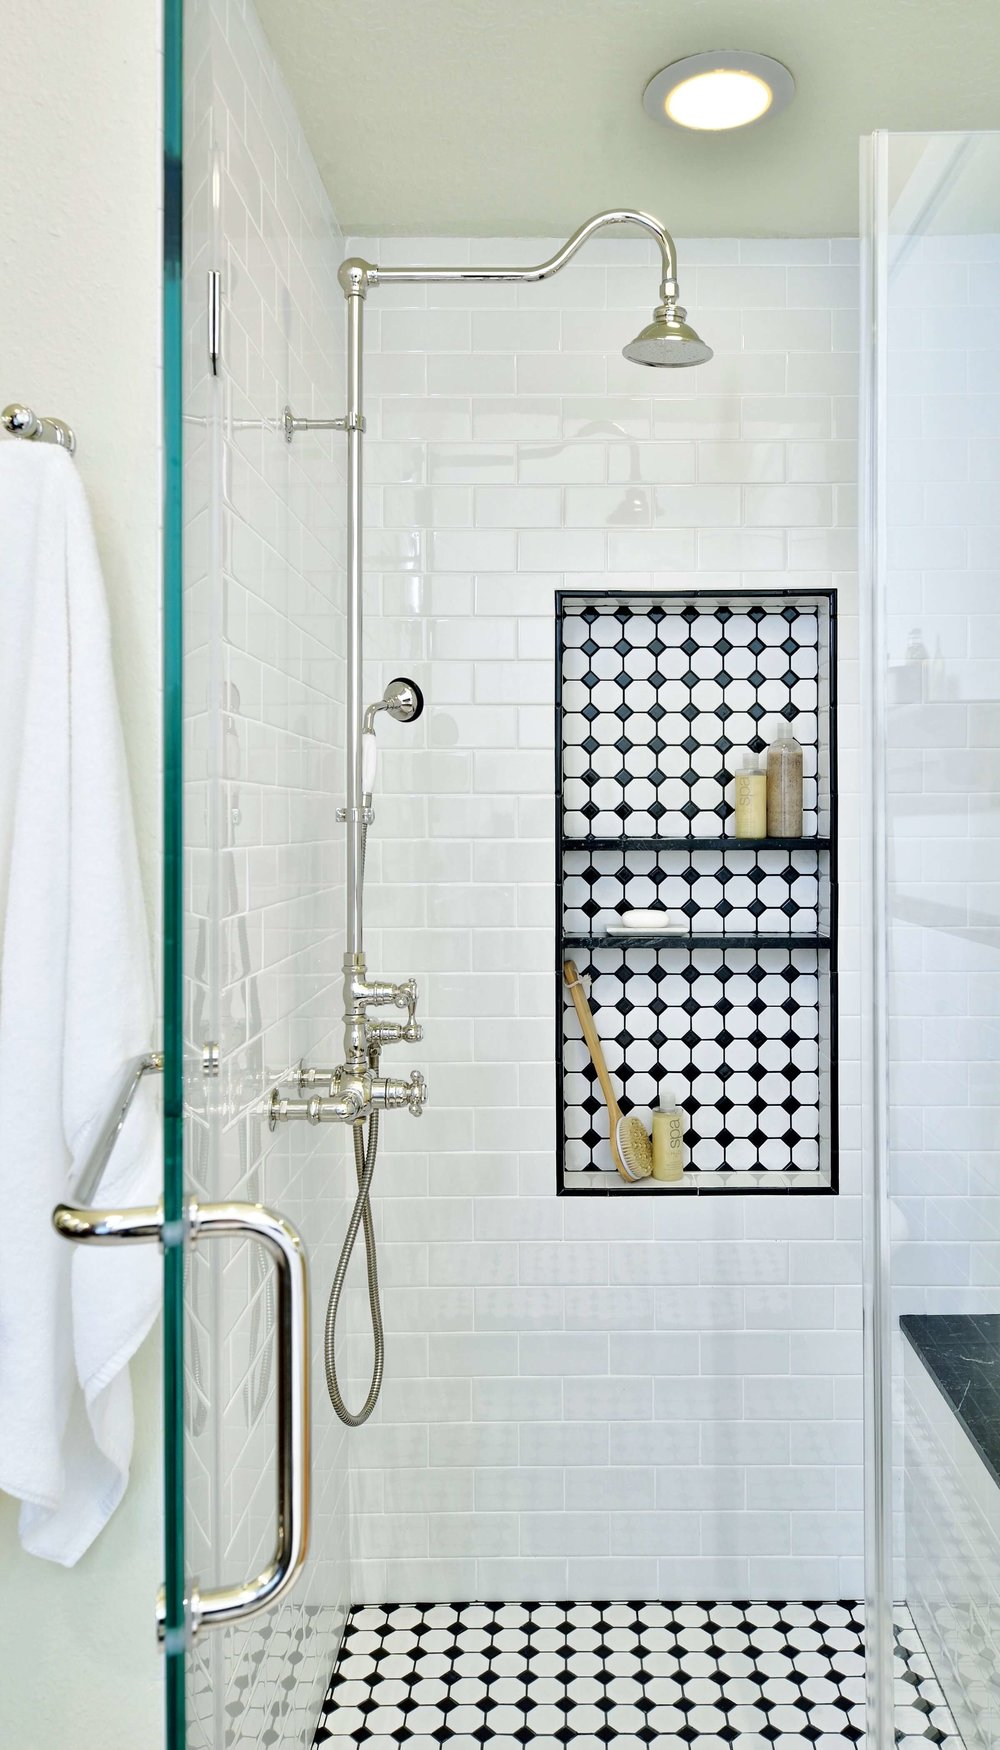 Black and white tile shower with shampoo niche and black marble shelf | Carla Aston, Designer, Miro Dvorscak, Photographer #shampooniche #showerniche